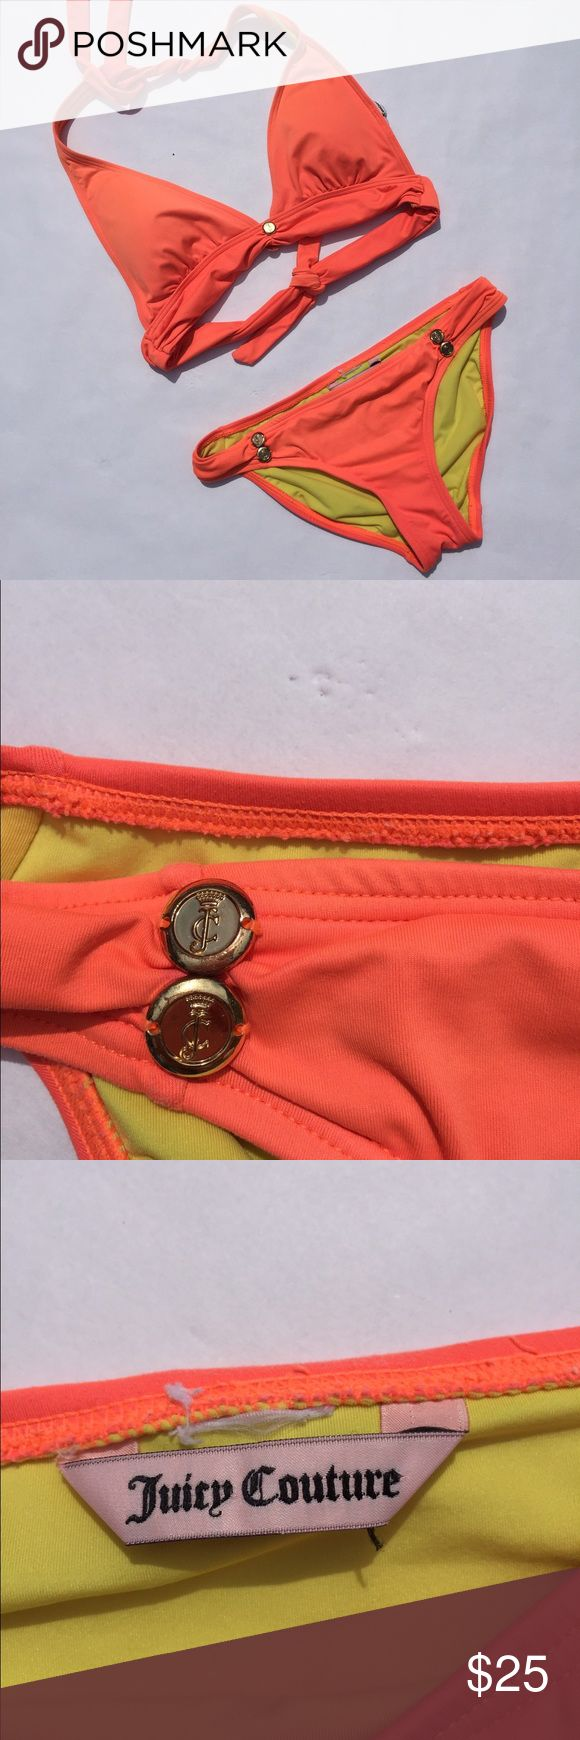 Juicy Couture Bikini Neon orange bikini. No stains or pulls in fabric. Elastic is still in great condition. Tags have been removed for comfort but it's a medium top and bottom. Padding in top Juicy Couture Swim Bikinis